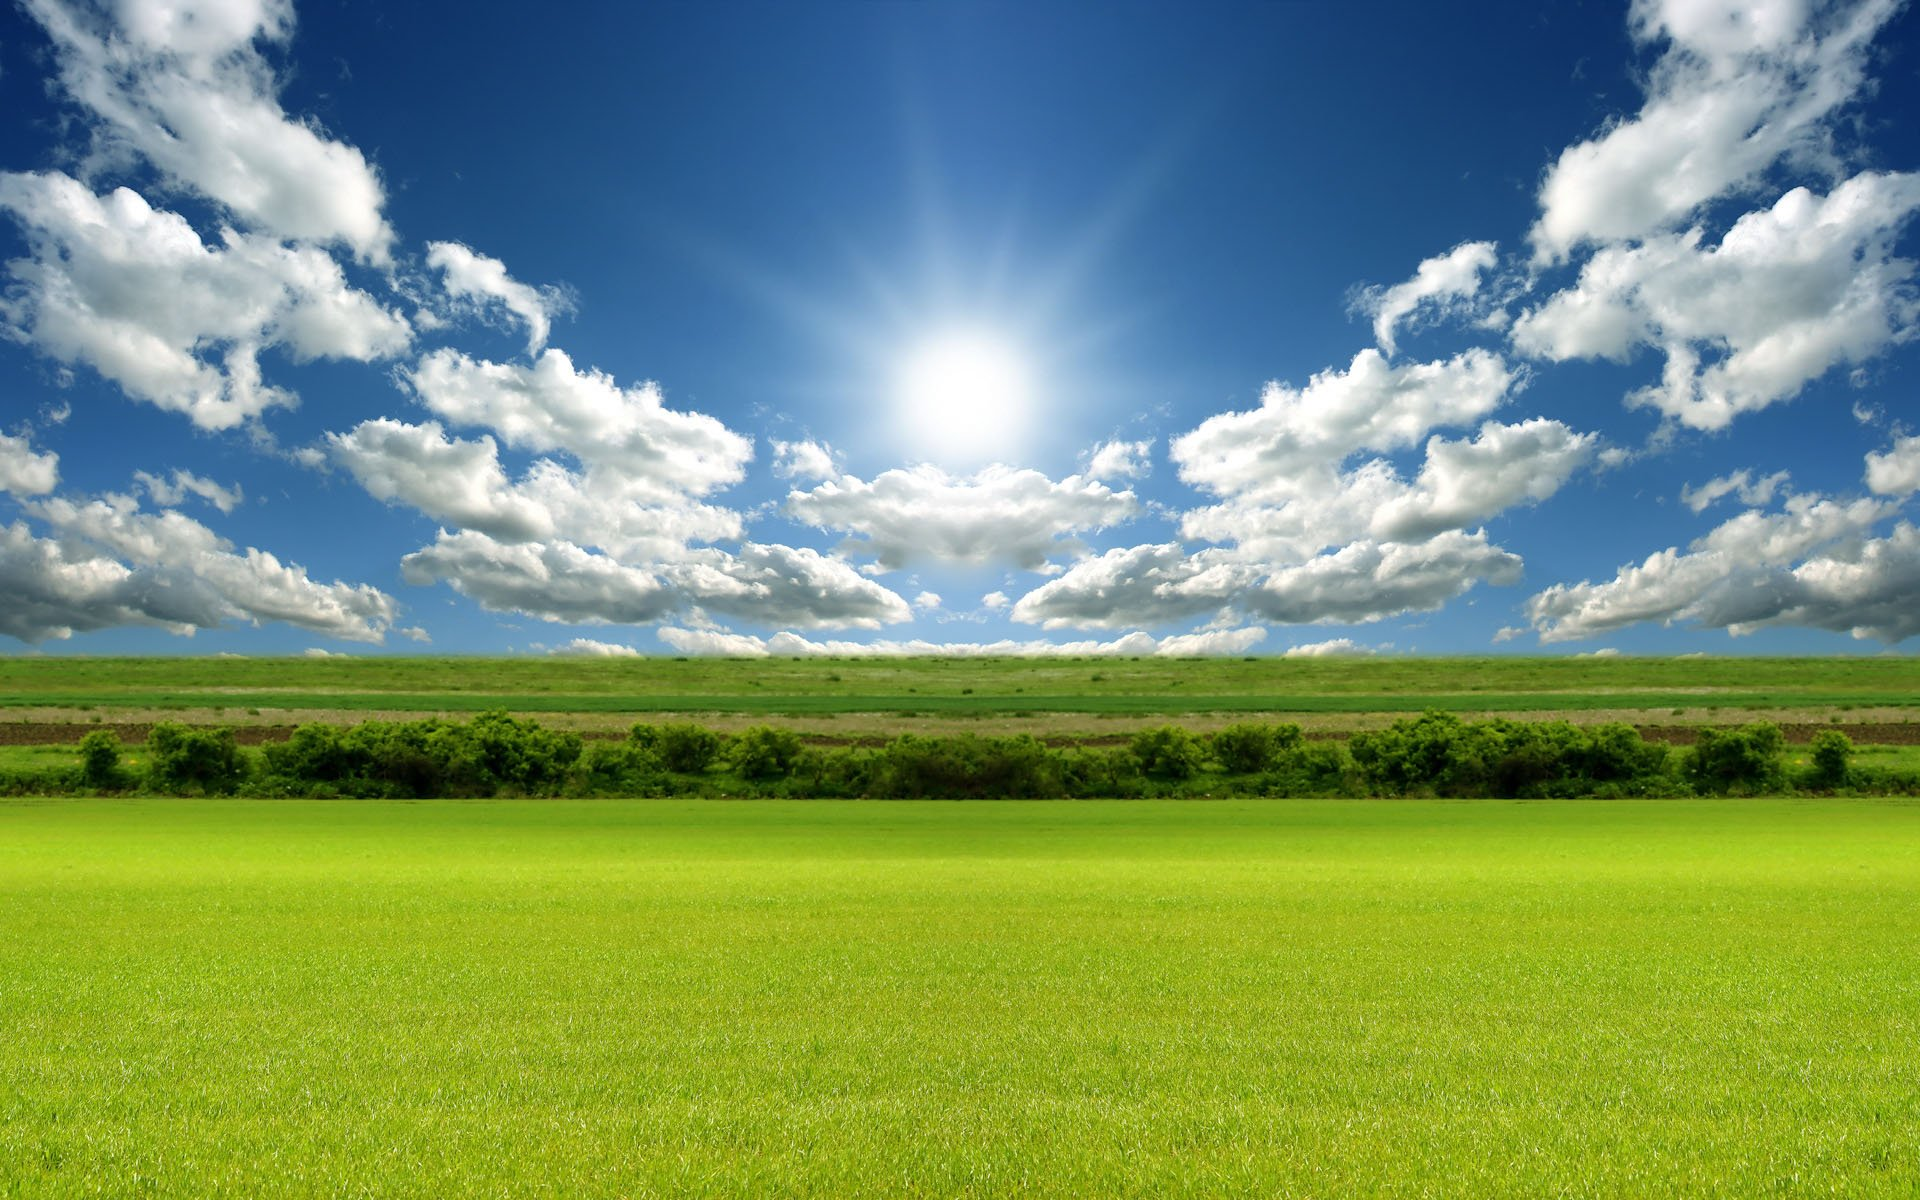 Sunny Day Free Wallpaper